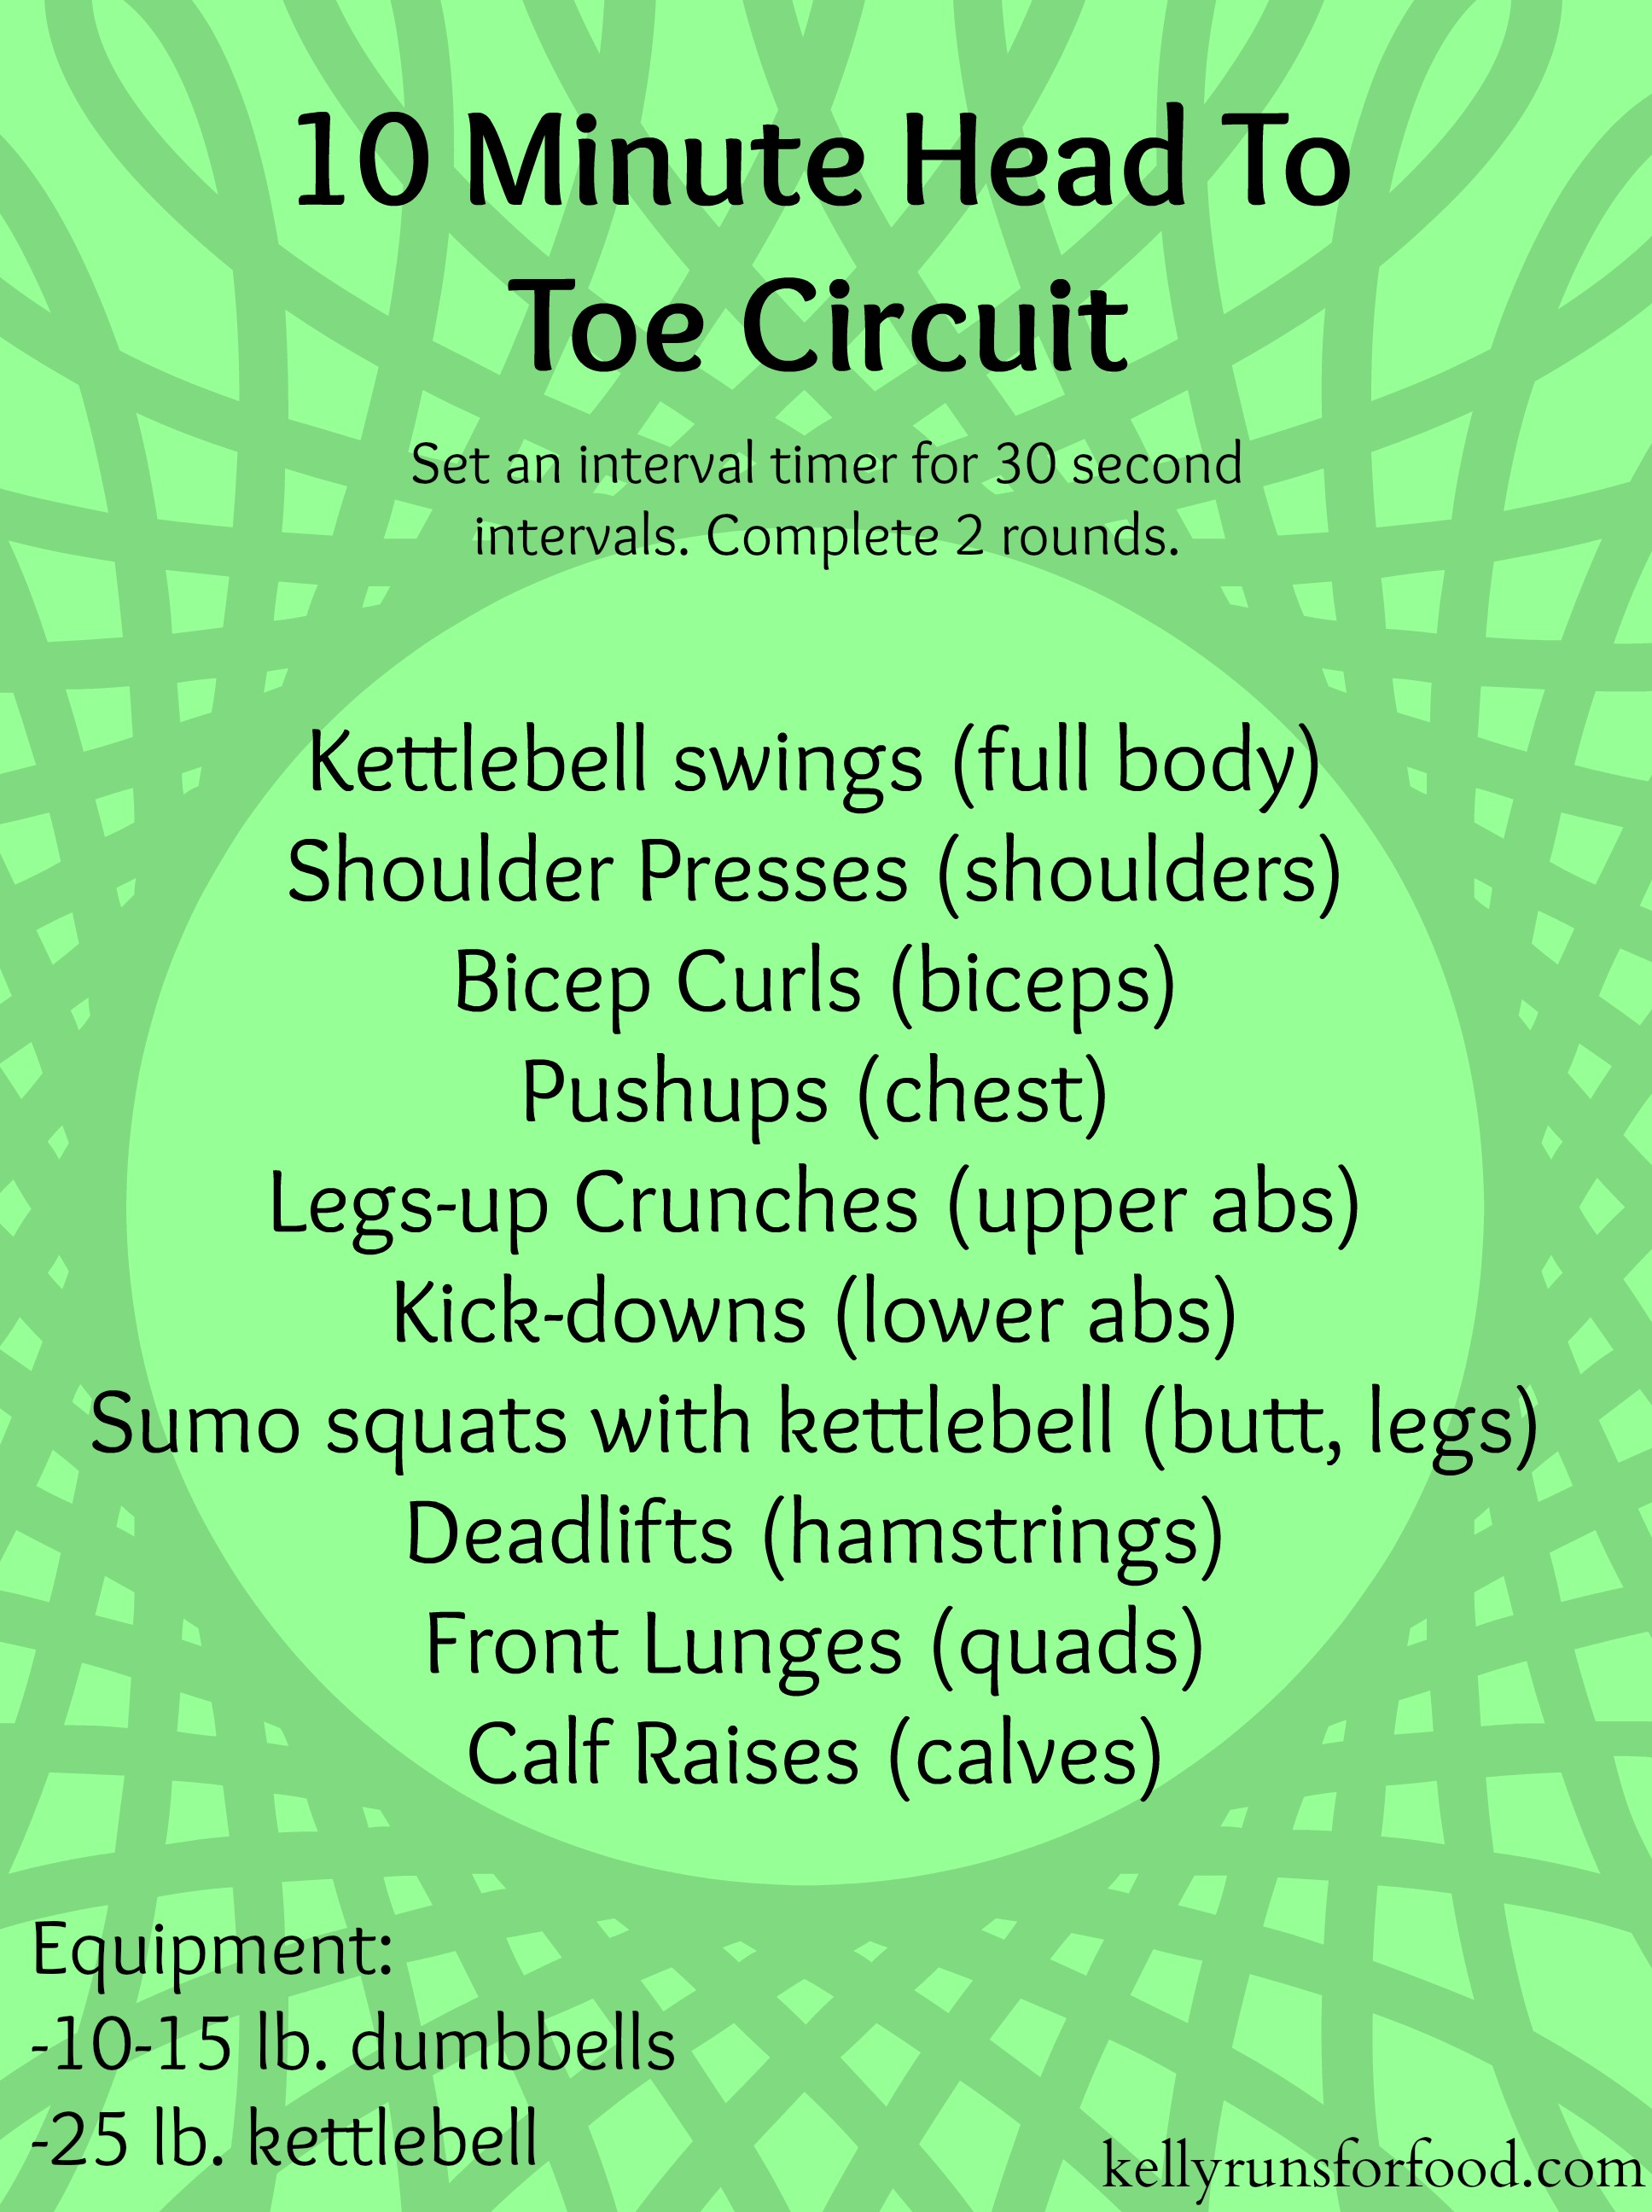 10 minute head to toe circuit